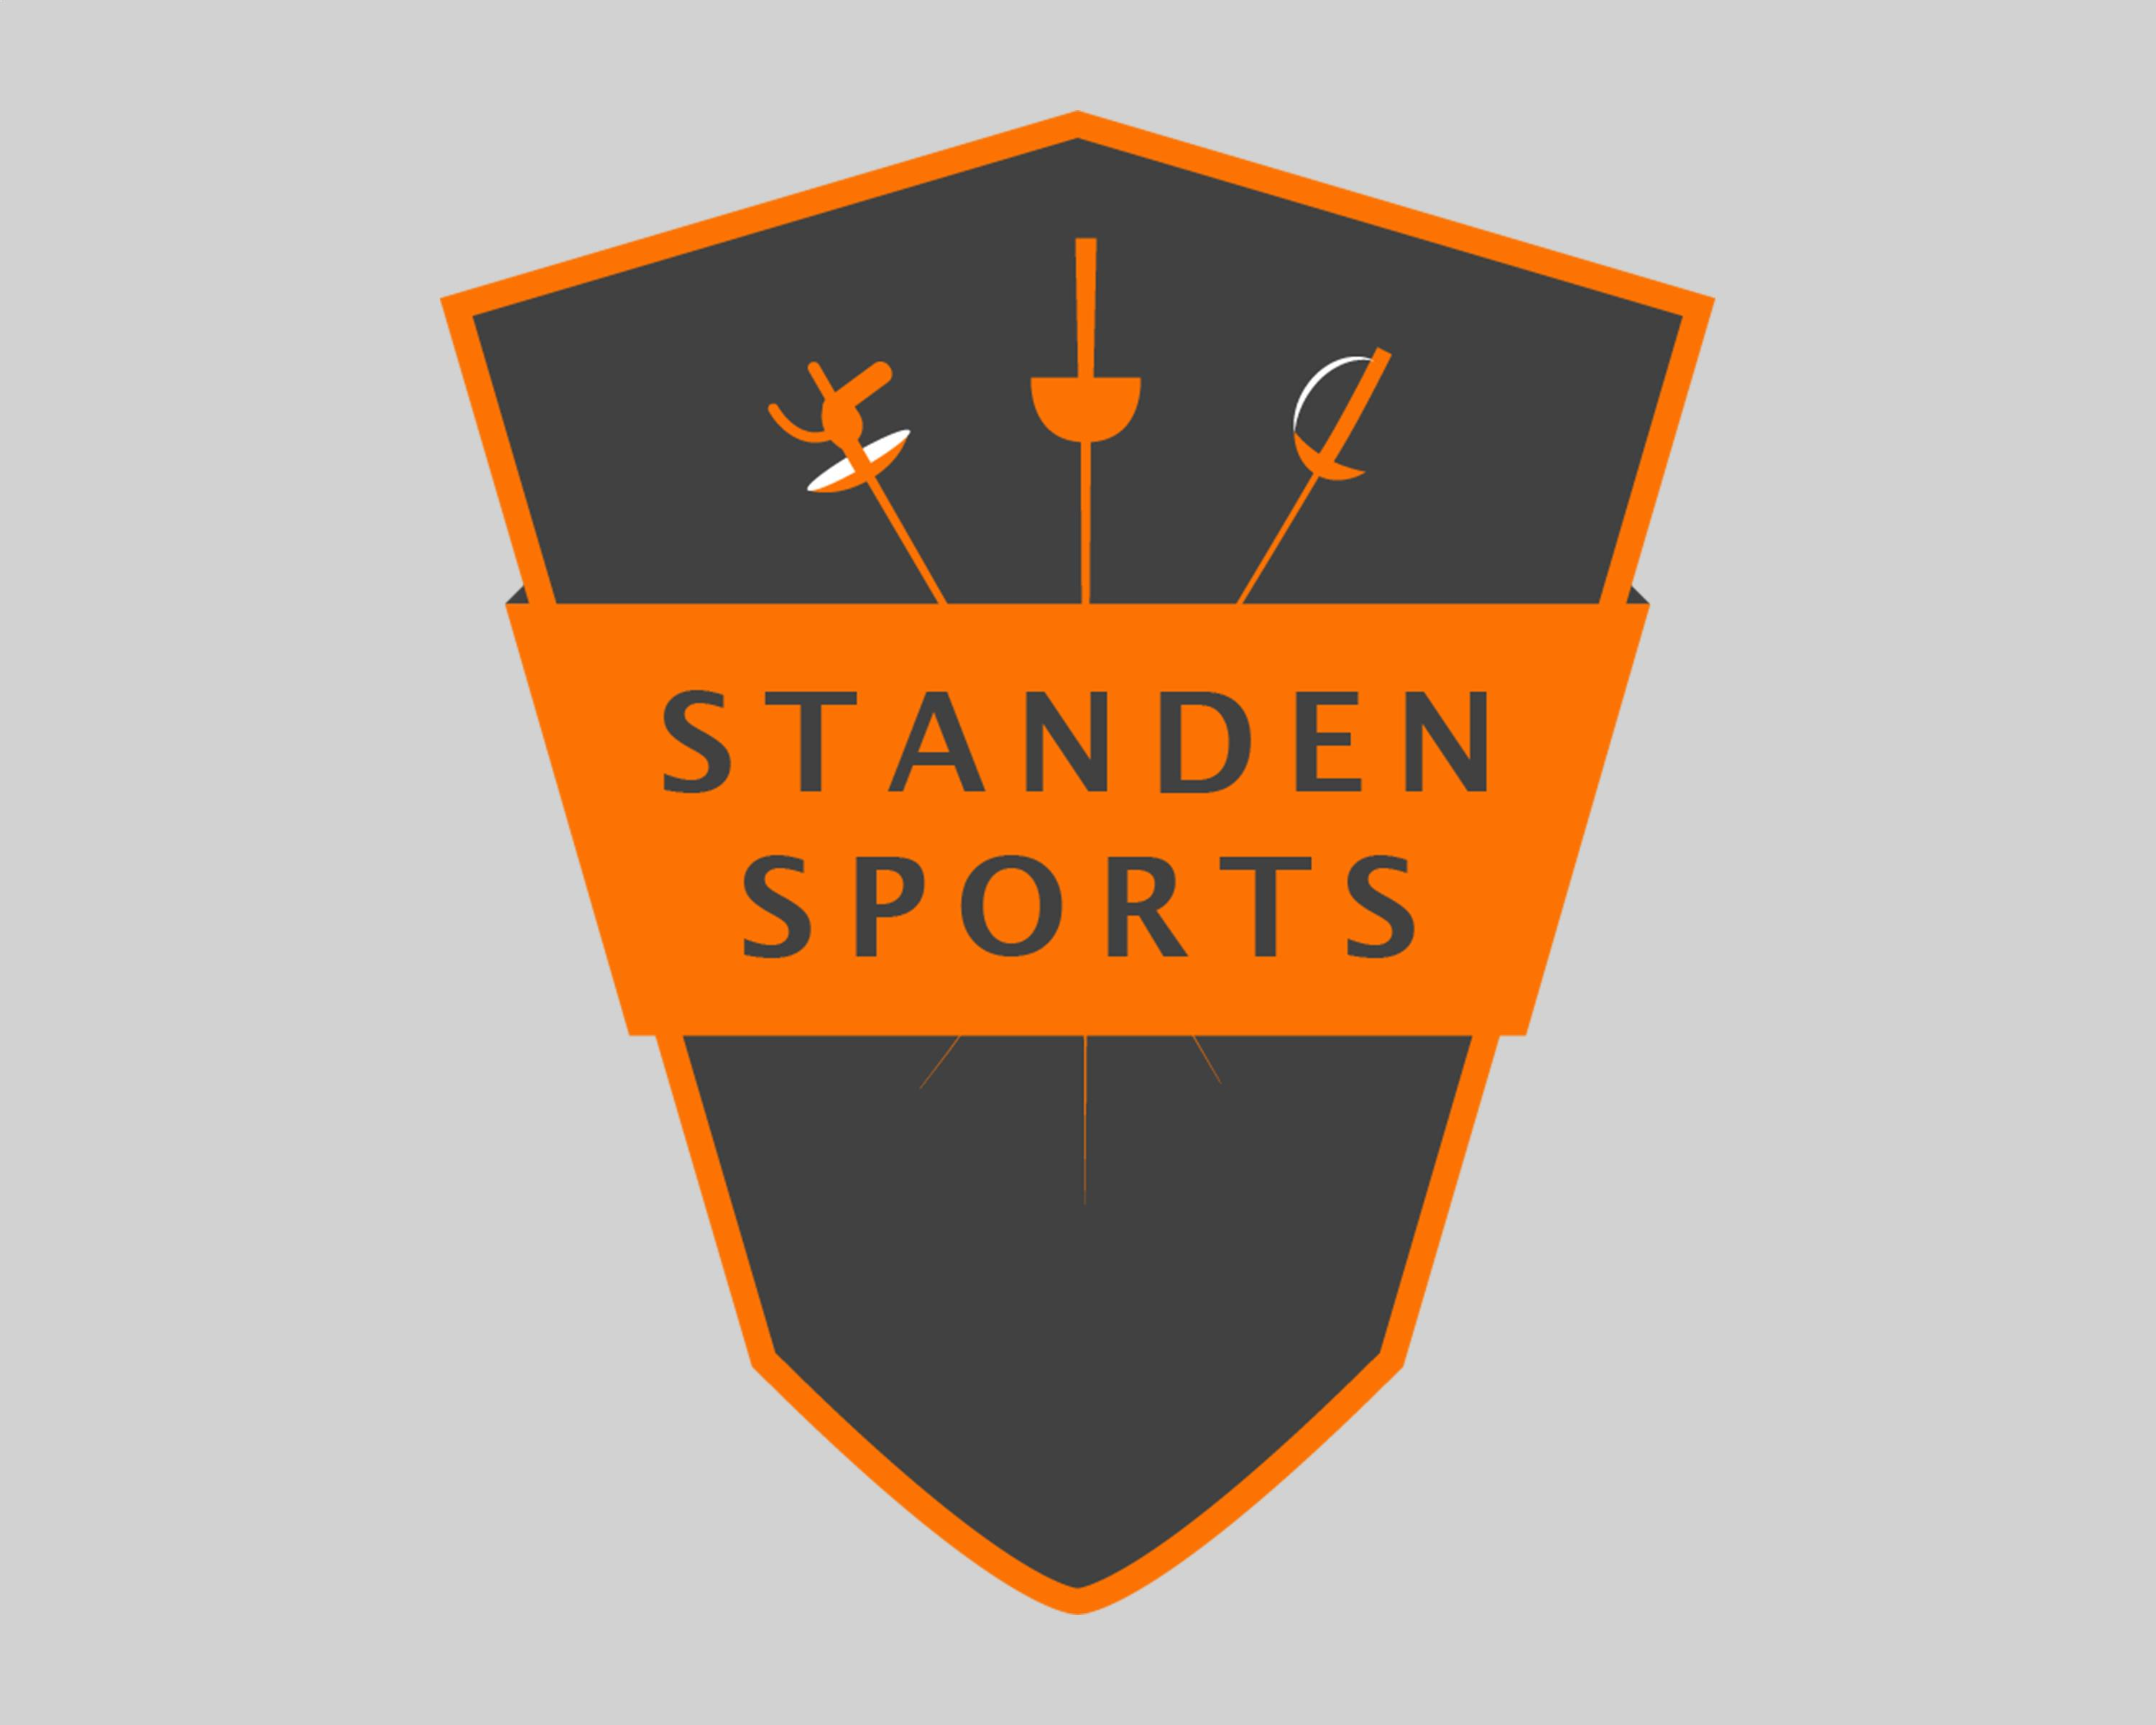 Standen Sports Ltd logo: an orange shield with a dark grey background with three fencing swords crossed pointing down